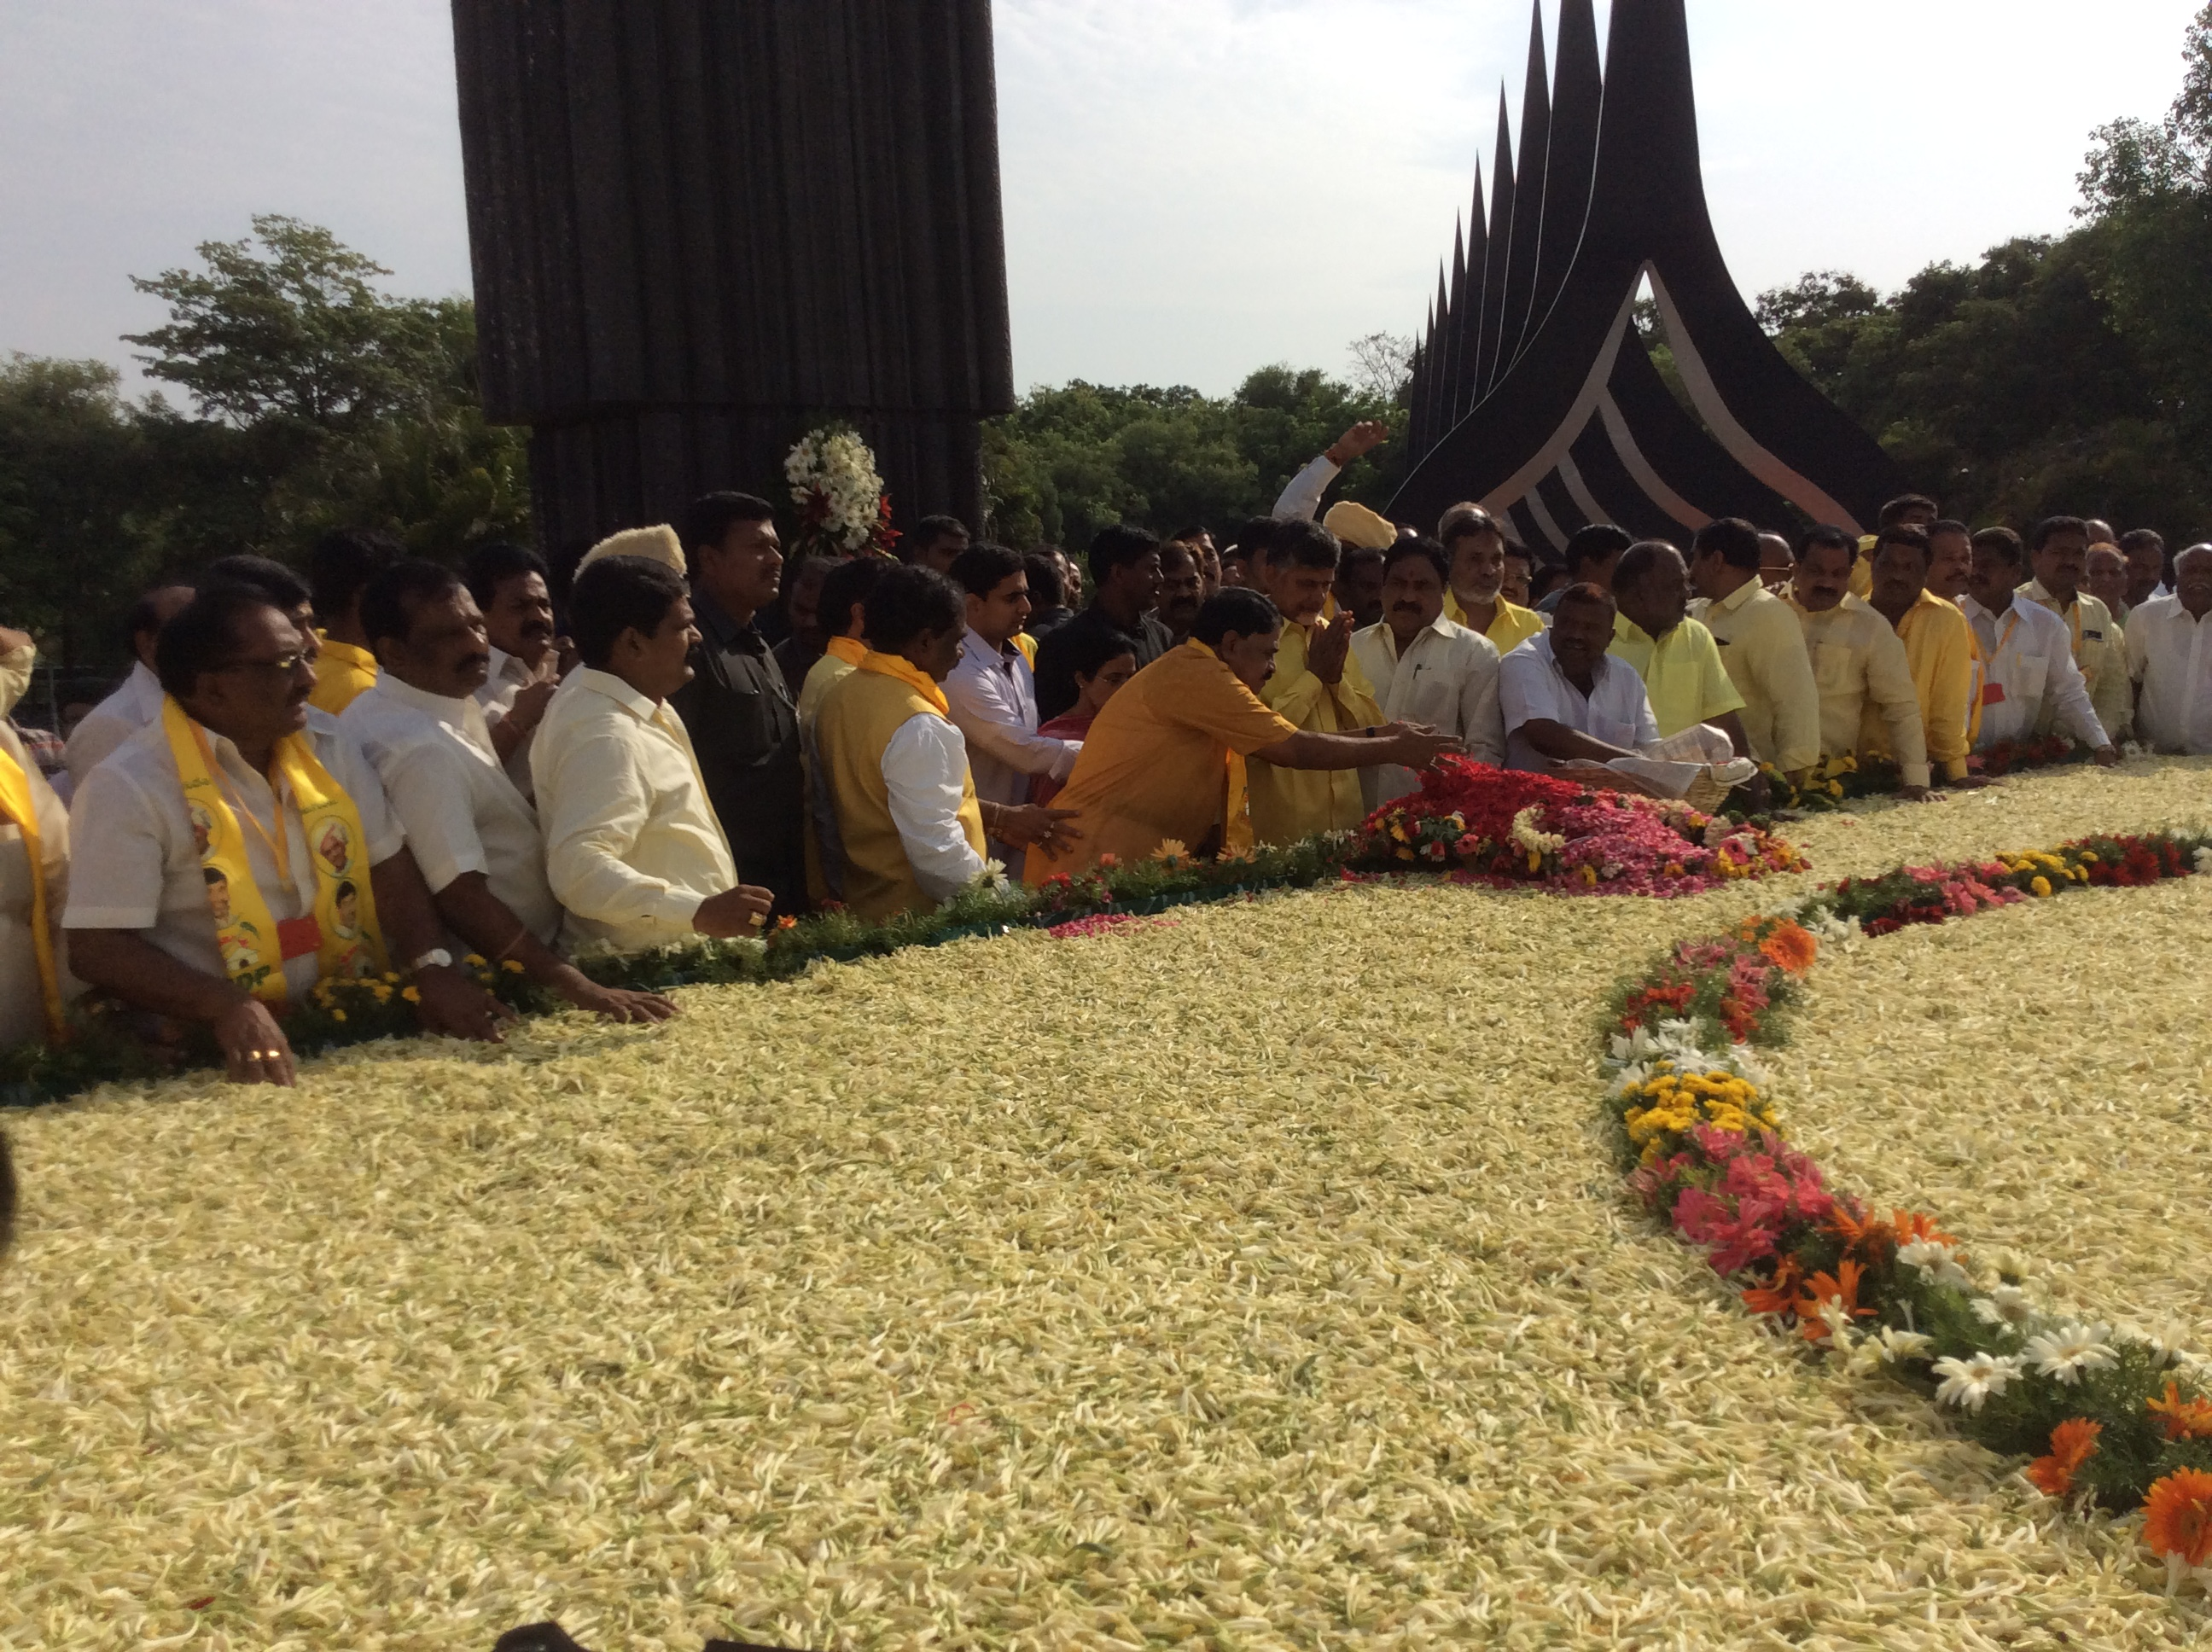 Minister Dr Palle Rraghunatha Reddy paying floral tributes along with the AP CM Babu and Nandamuri Balakrishna at NTR Ghat of Hyderabad, on 28-5-15 on the occasion of NTR Jayanthi